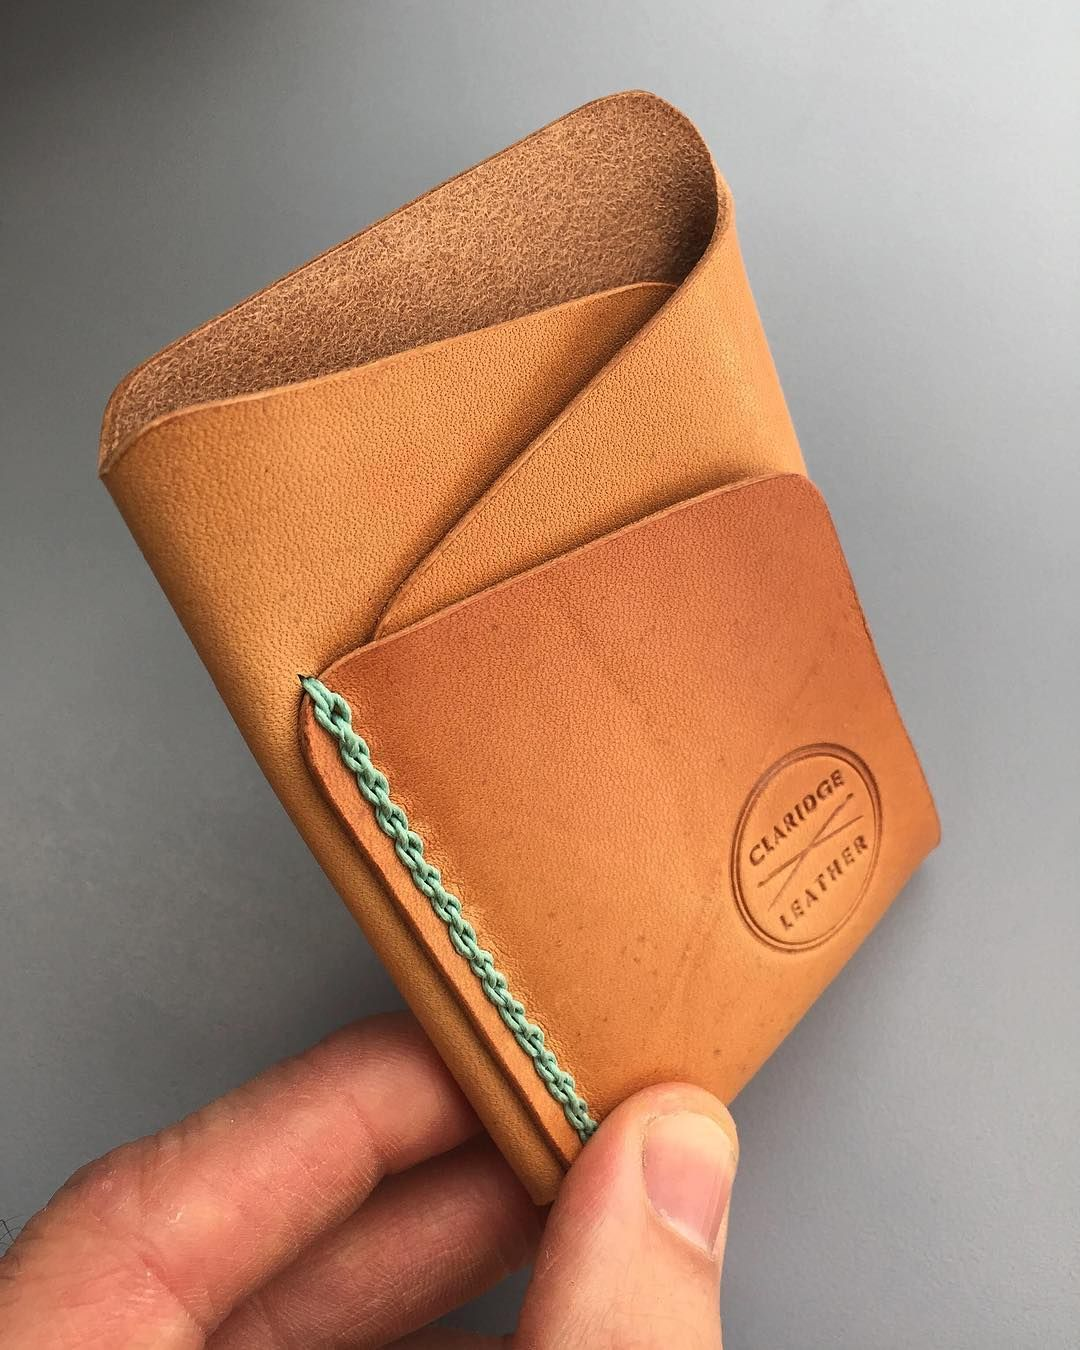 """Claridge Leather on Instagram: """"Join me live TONIGHT (Nov. 13) for some wallet stitching at about 9:30 PM MST. If you have wondered how this type of stitch is done,…"""" #leatherwallets"""